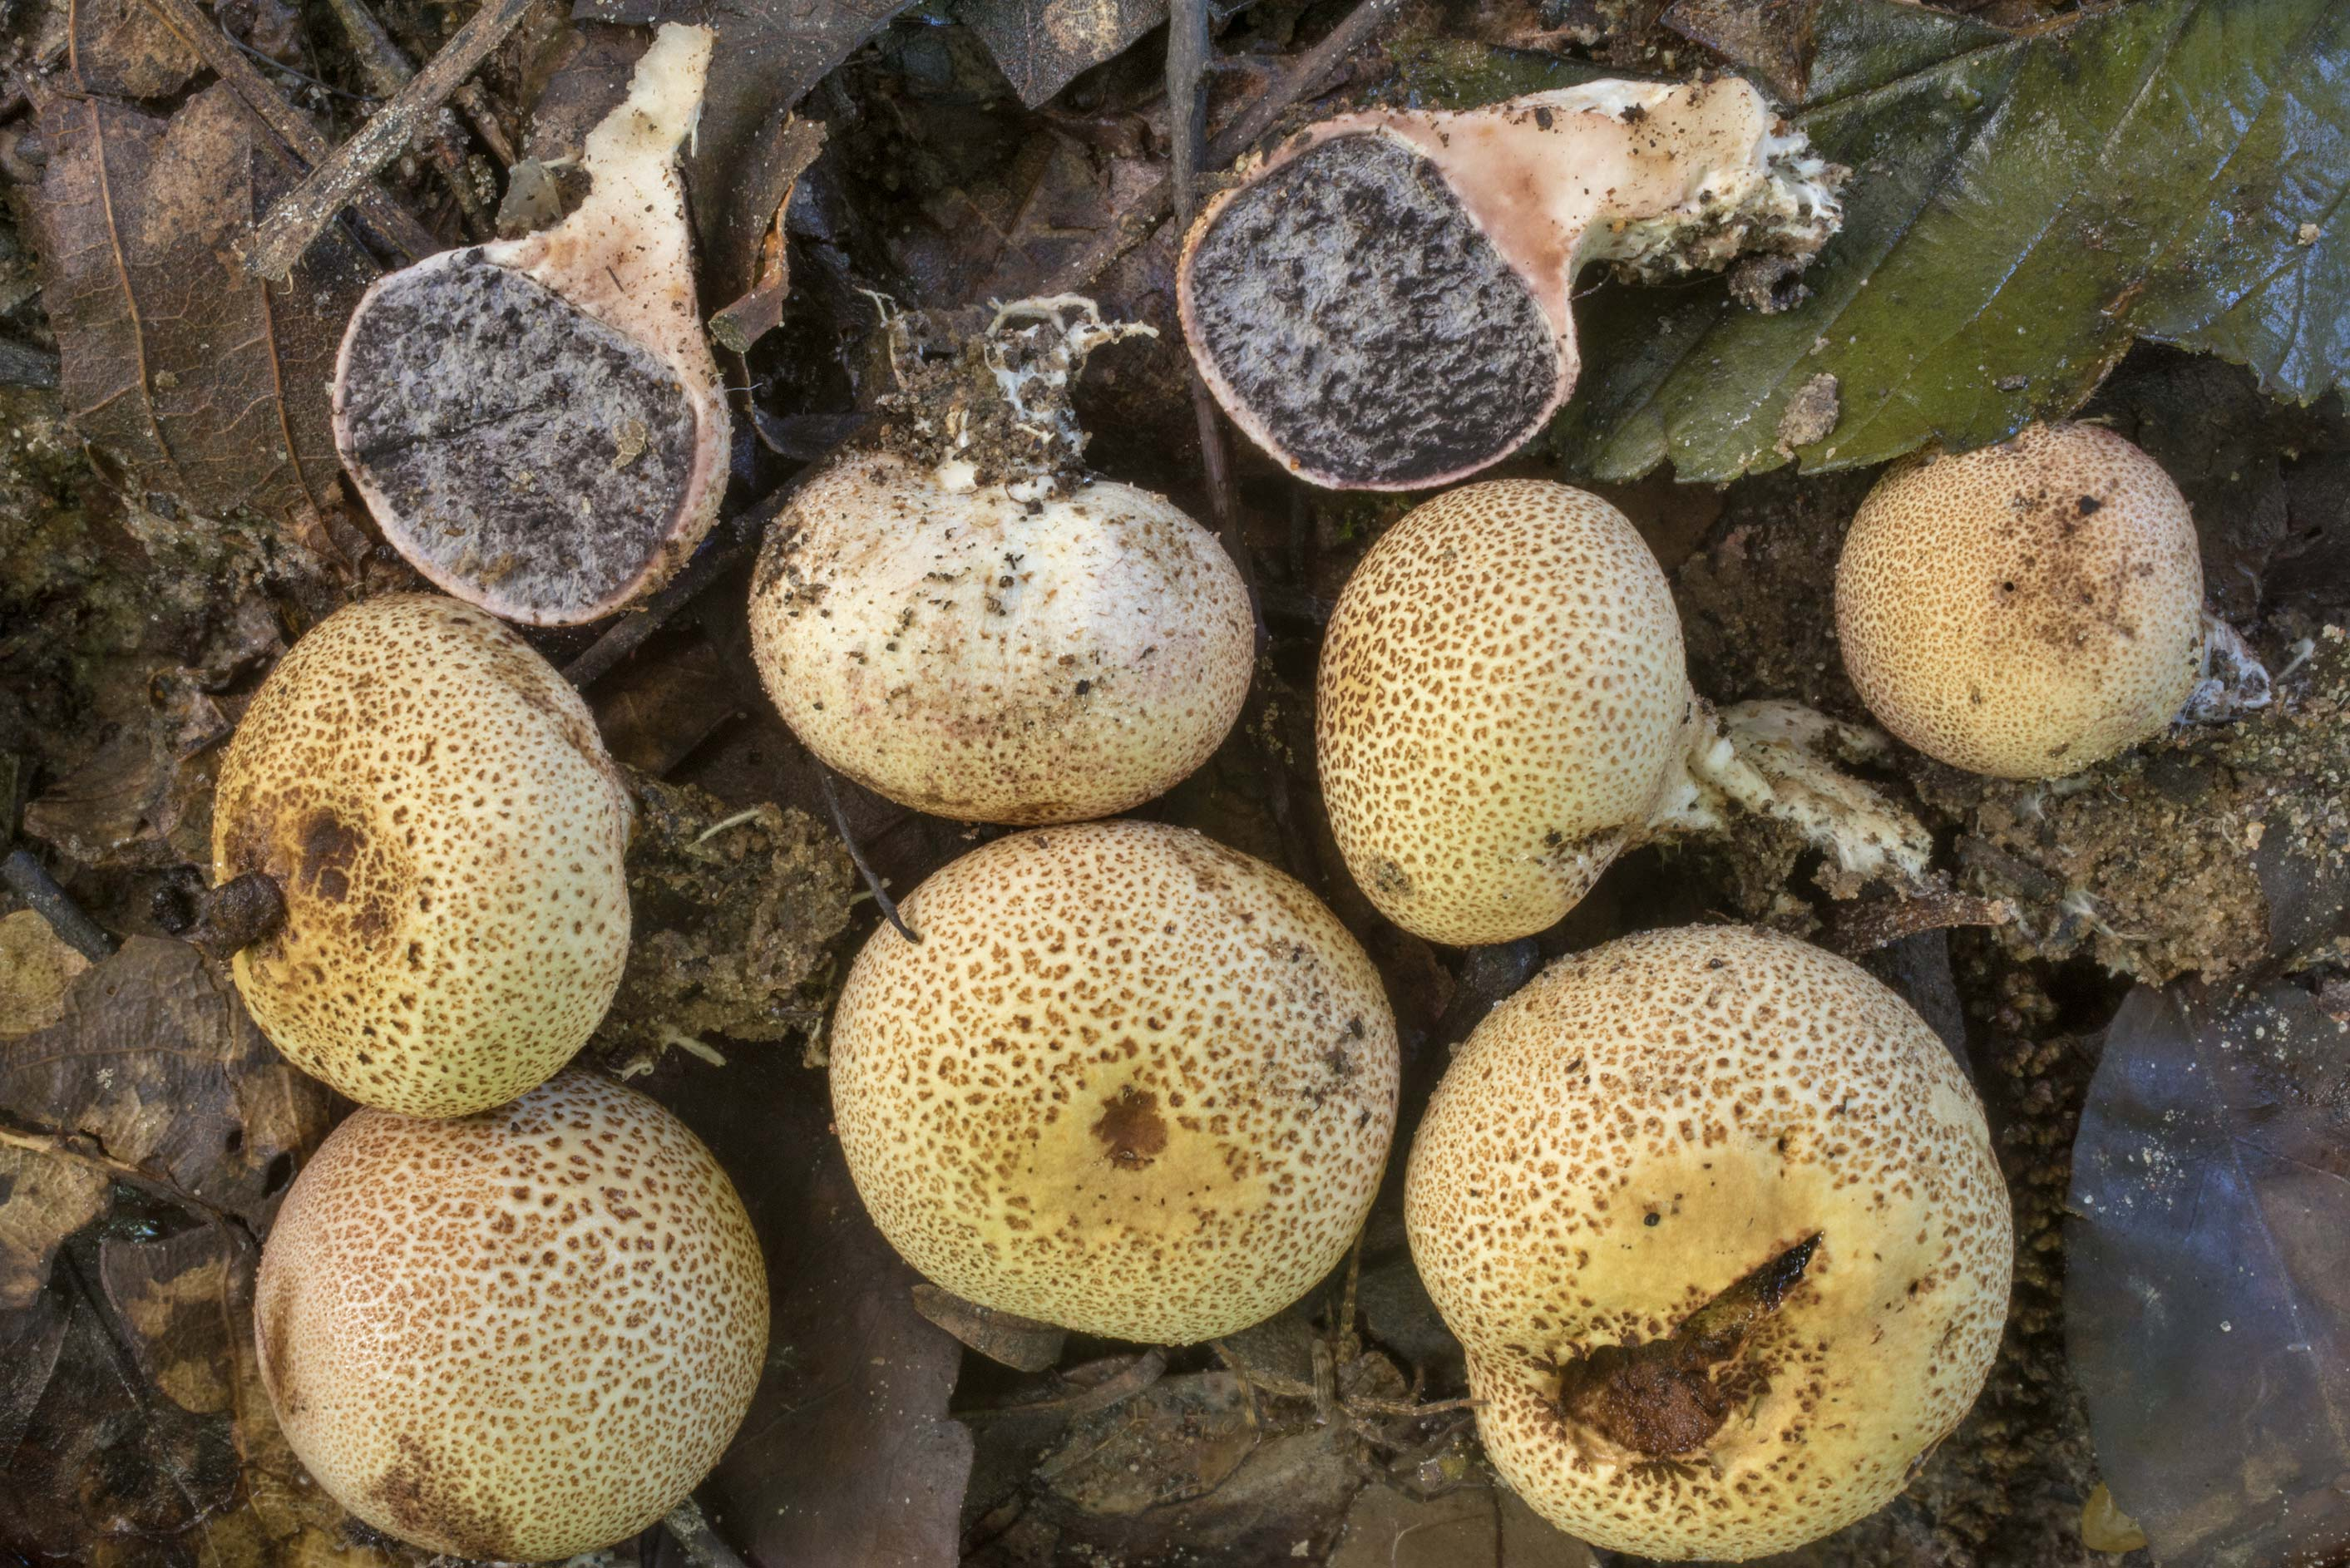 Leopard earthball mushrooms Scleroderma areolatum...Creek Park. College Station, Texas